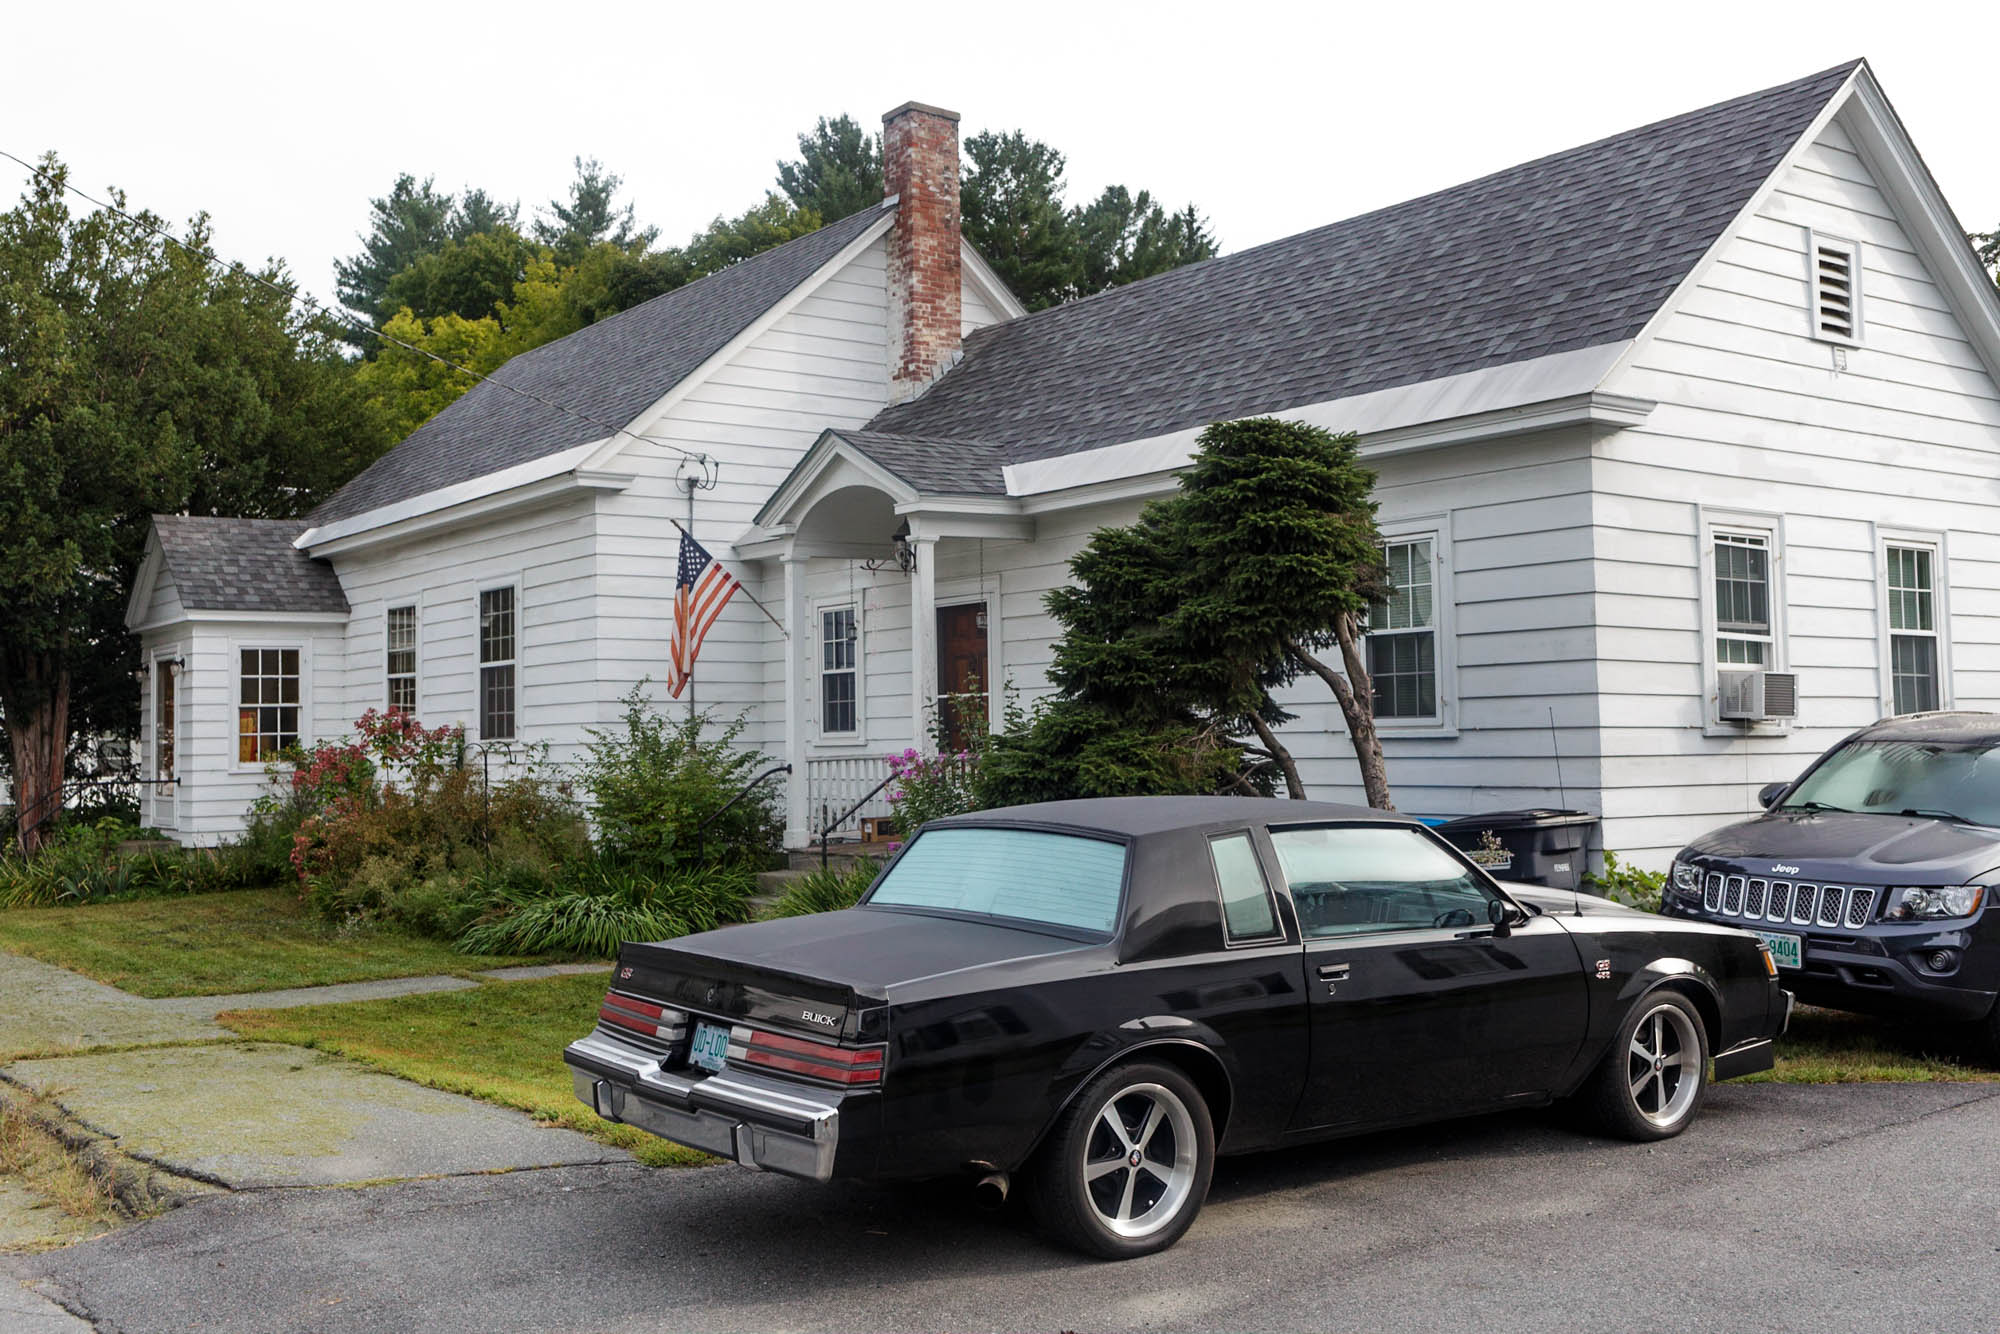 Black Car in Front of House